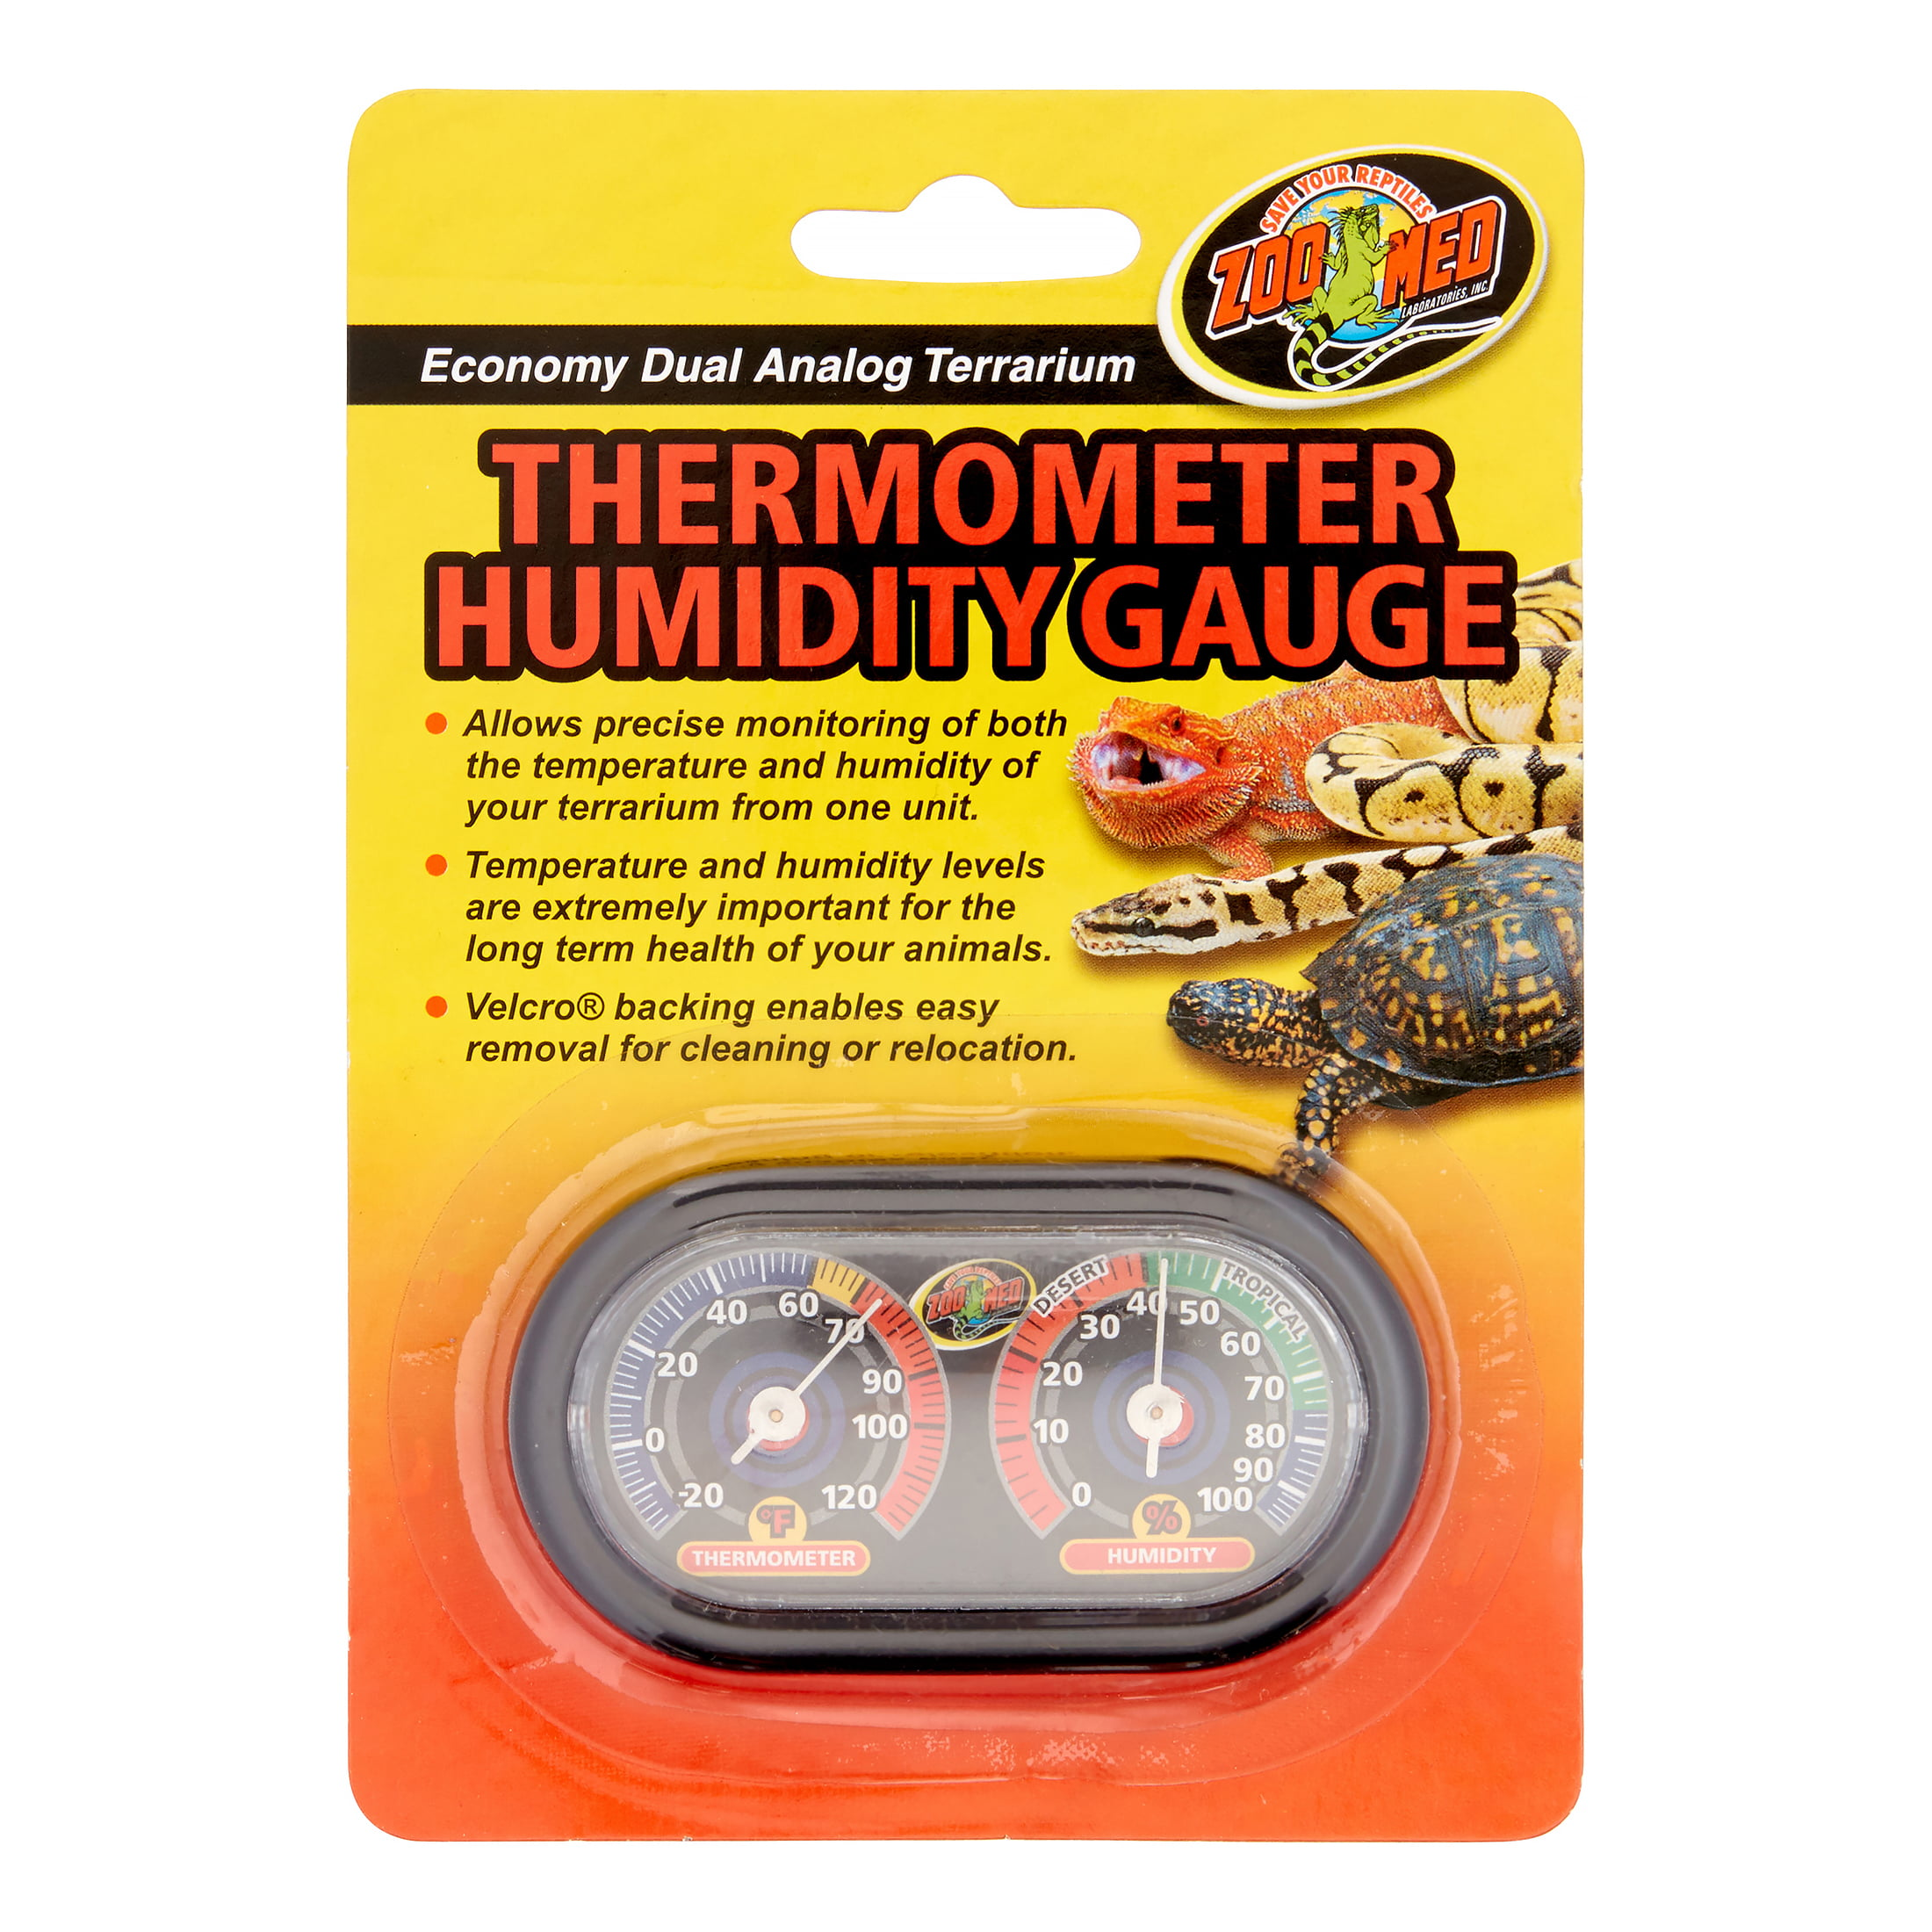 Zoo Med Economy Dual Analog Terrarium Thermometer Humidity Gauge by ZOO Med LABORATORIES INC